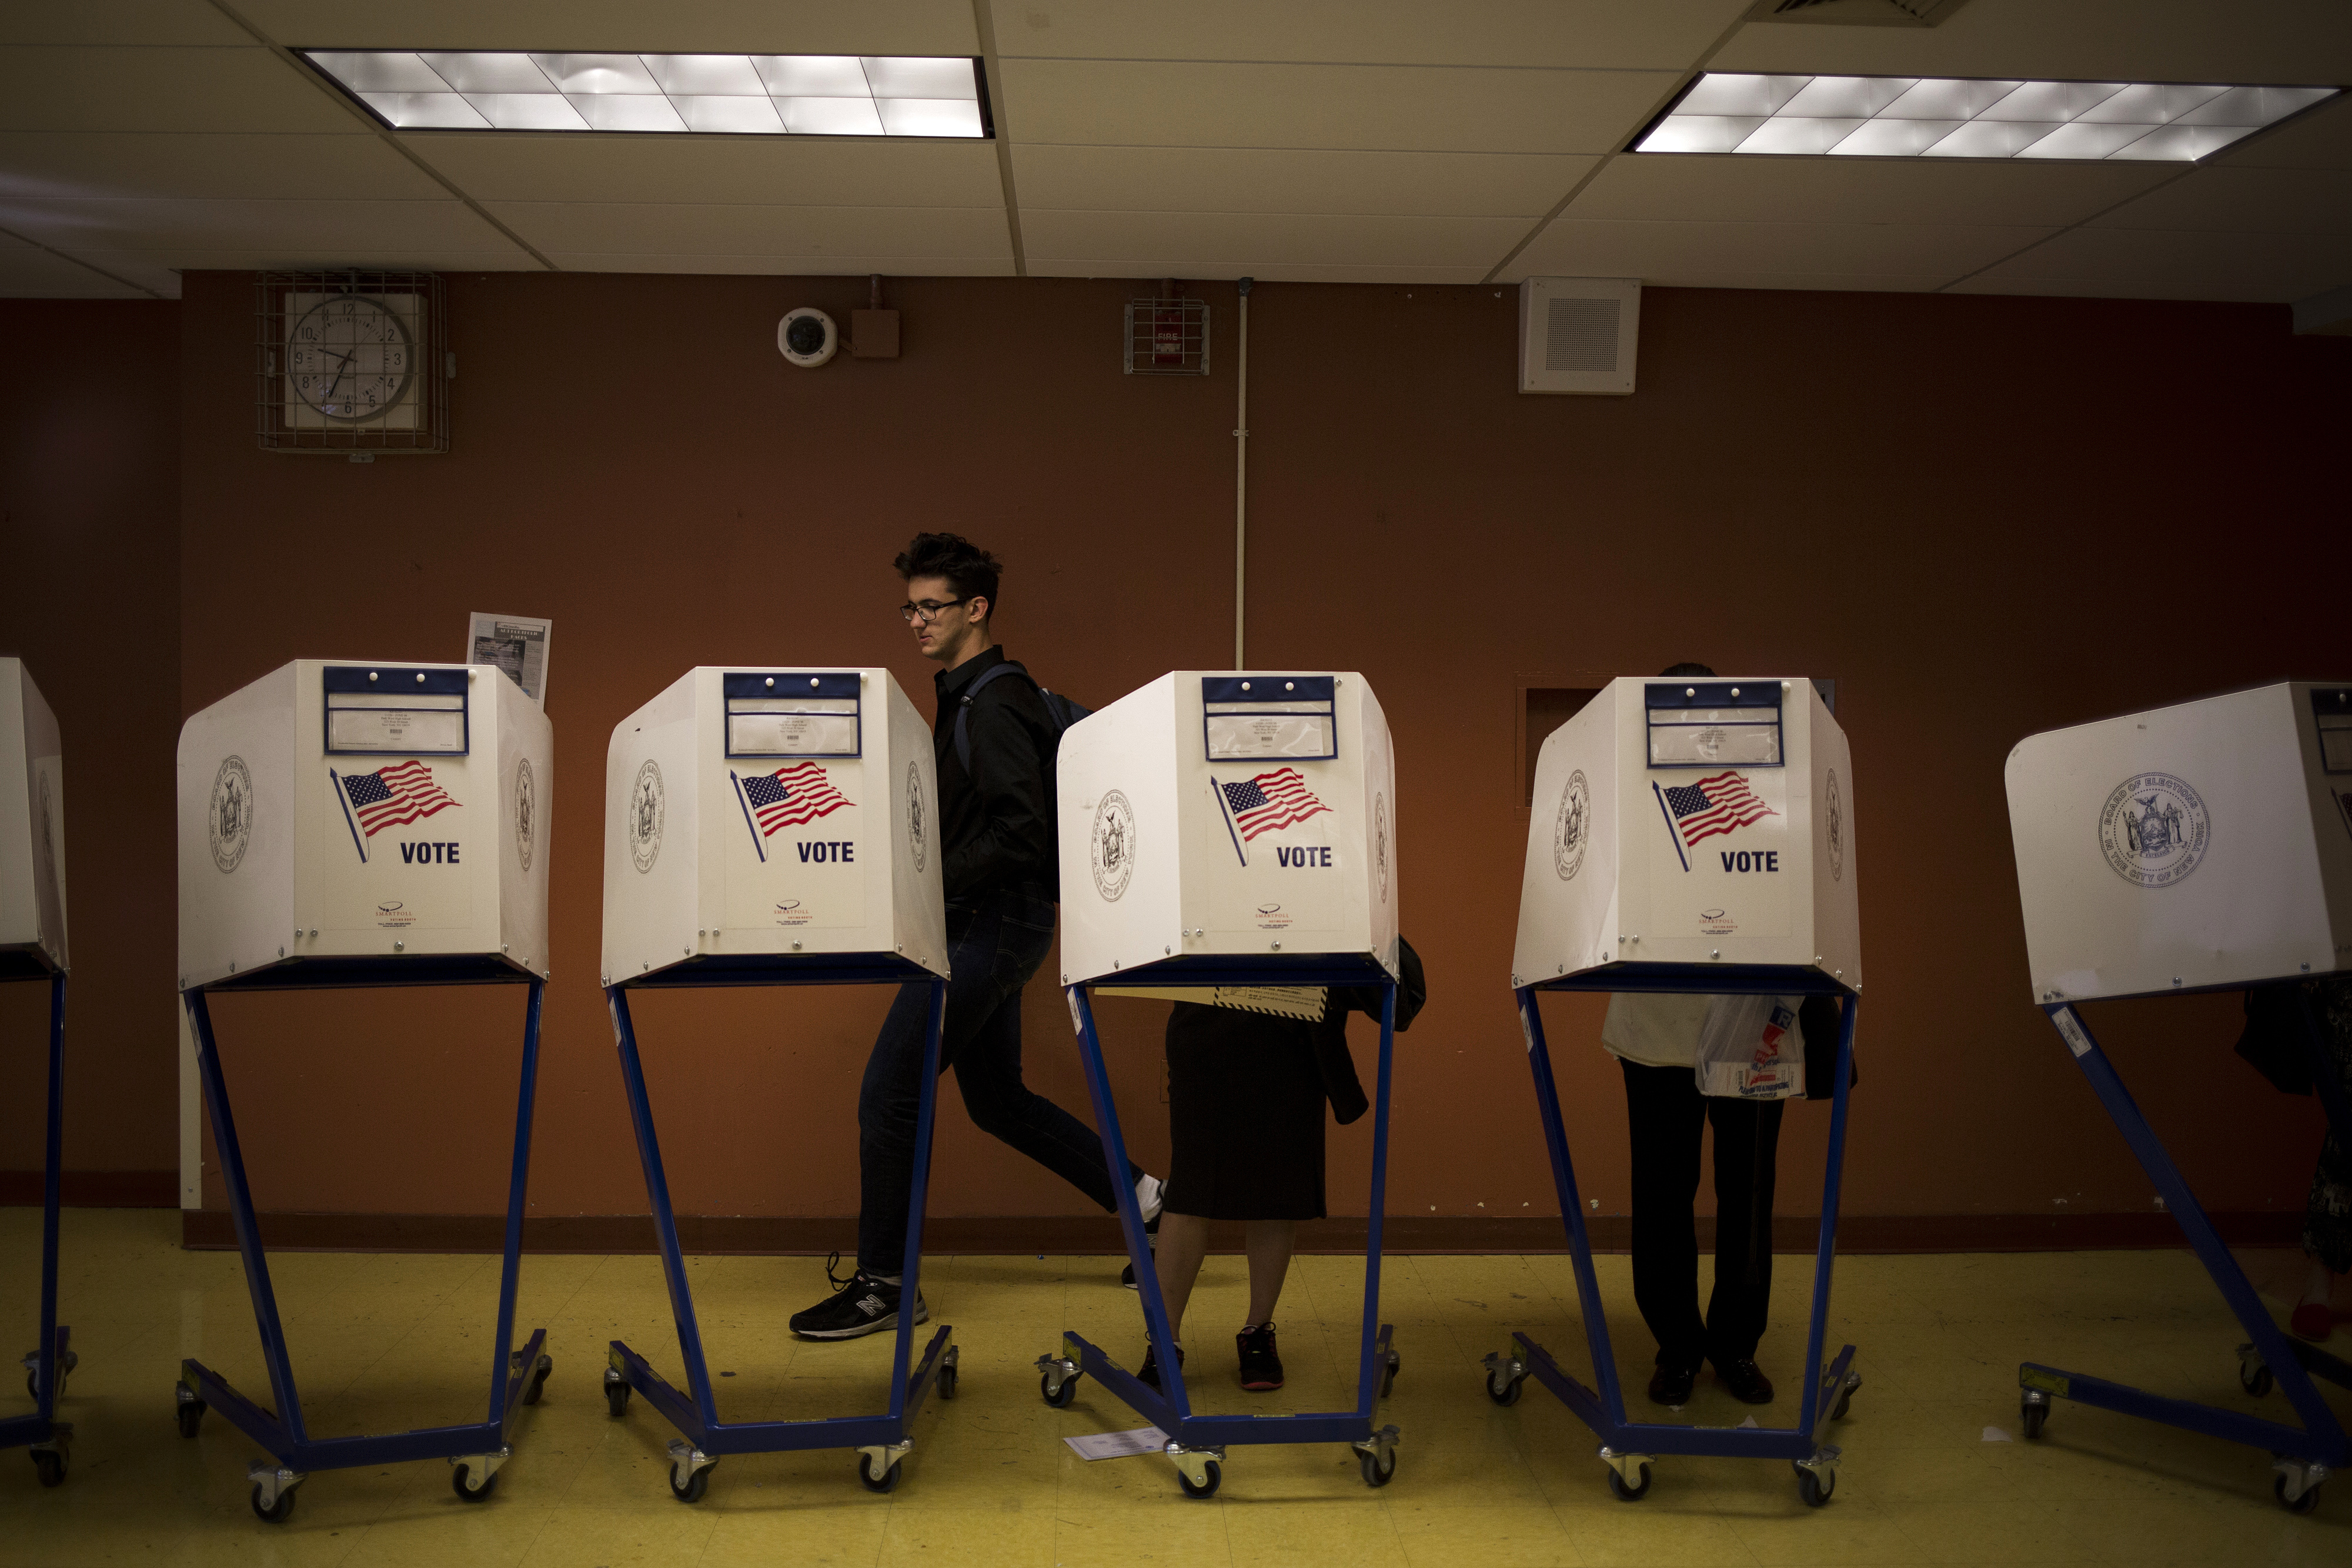 Residents cast ballots during the presidential primary vote at a polling location in New York on April 19, 2016.